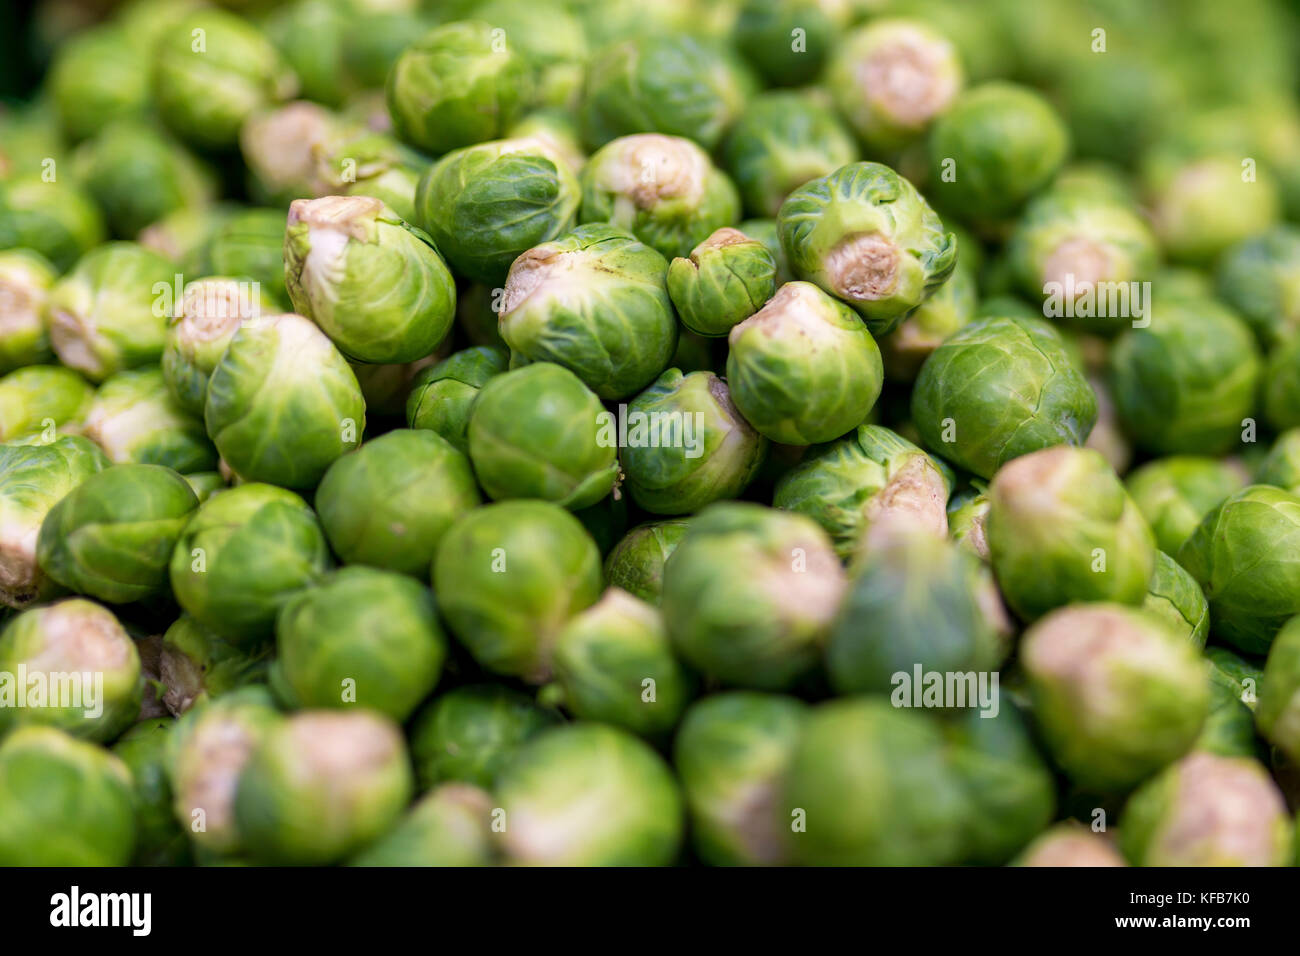 Close up of delicious and colourful vibrant brussel sprouts on a market stall in England, UK - Stock Image